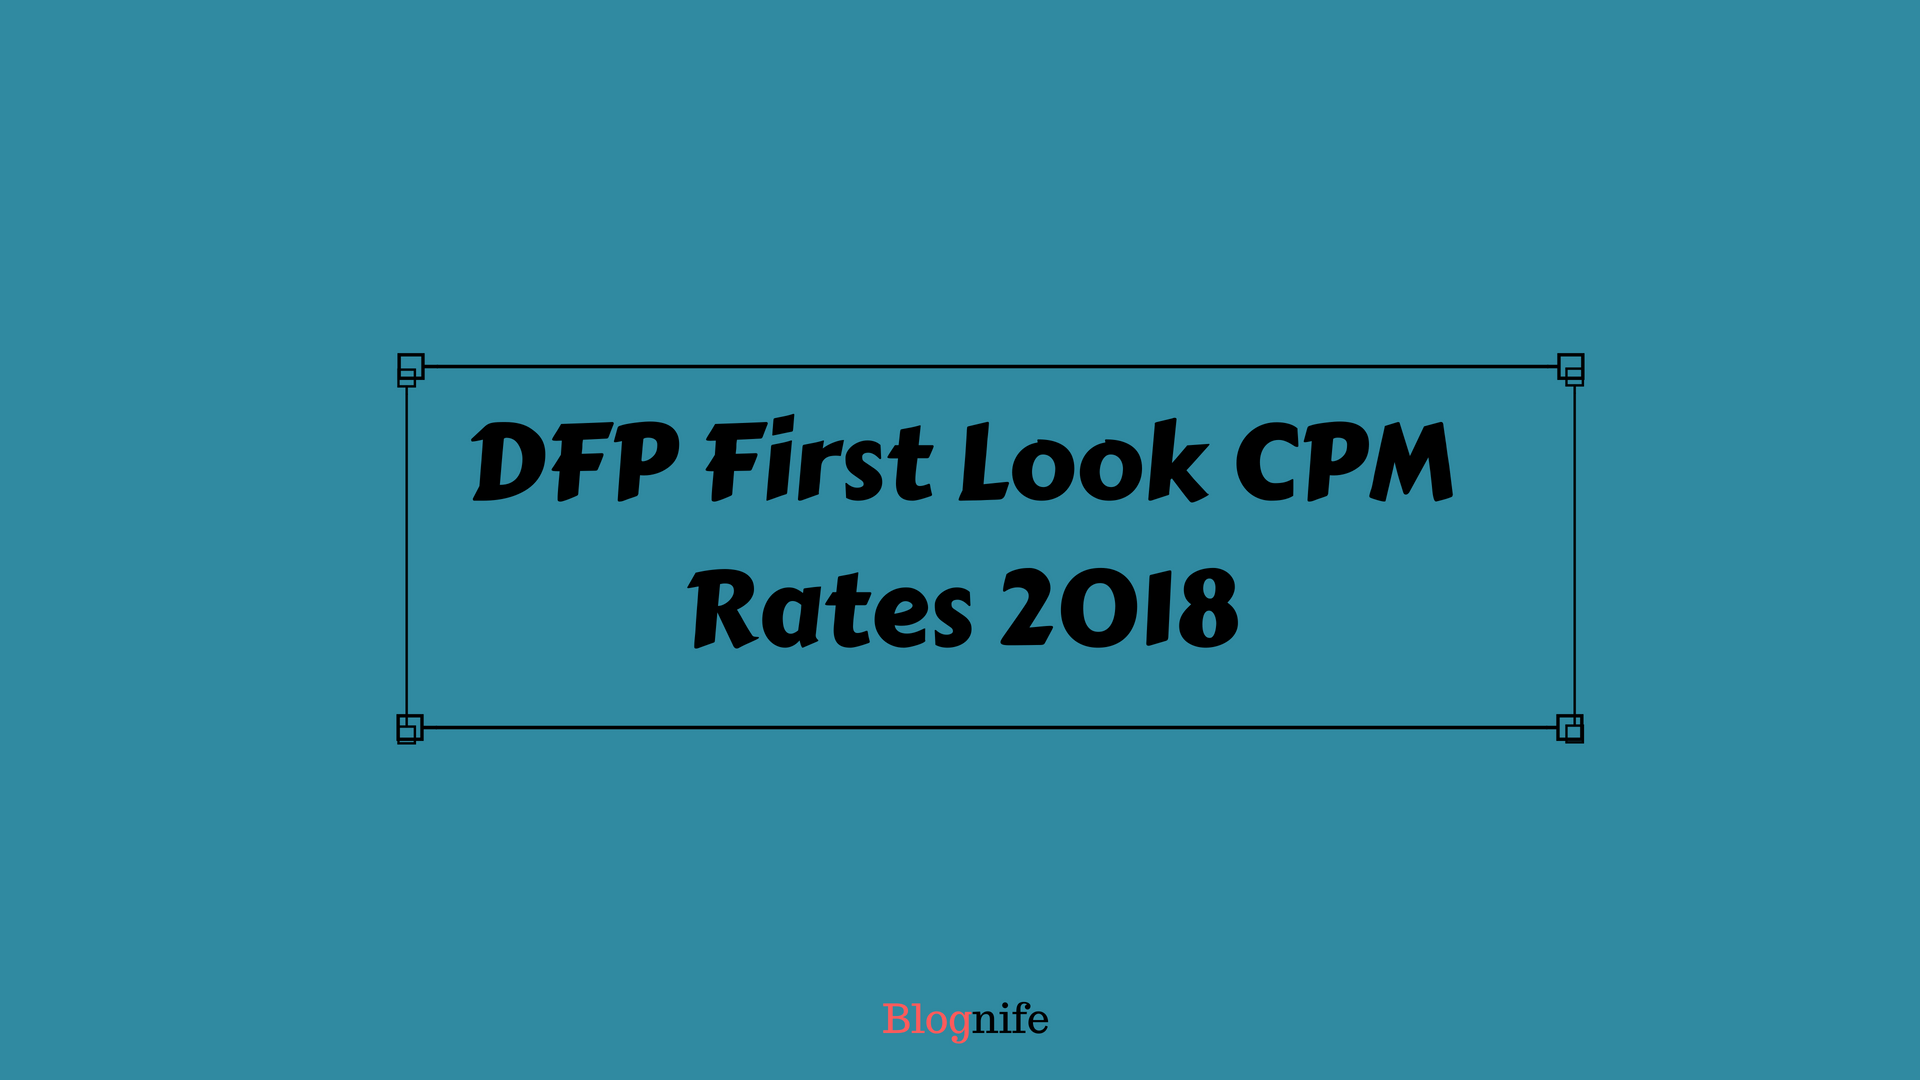 DFP First Look CPM Rates 2019